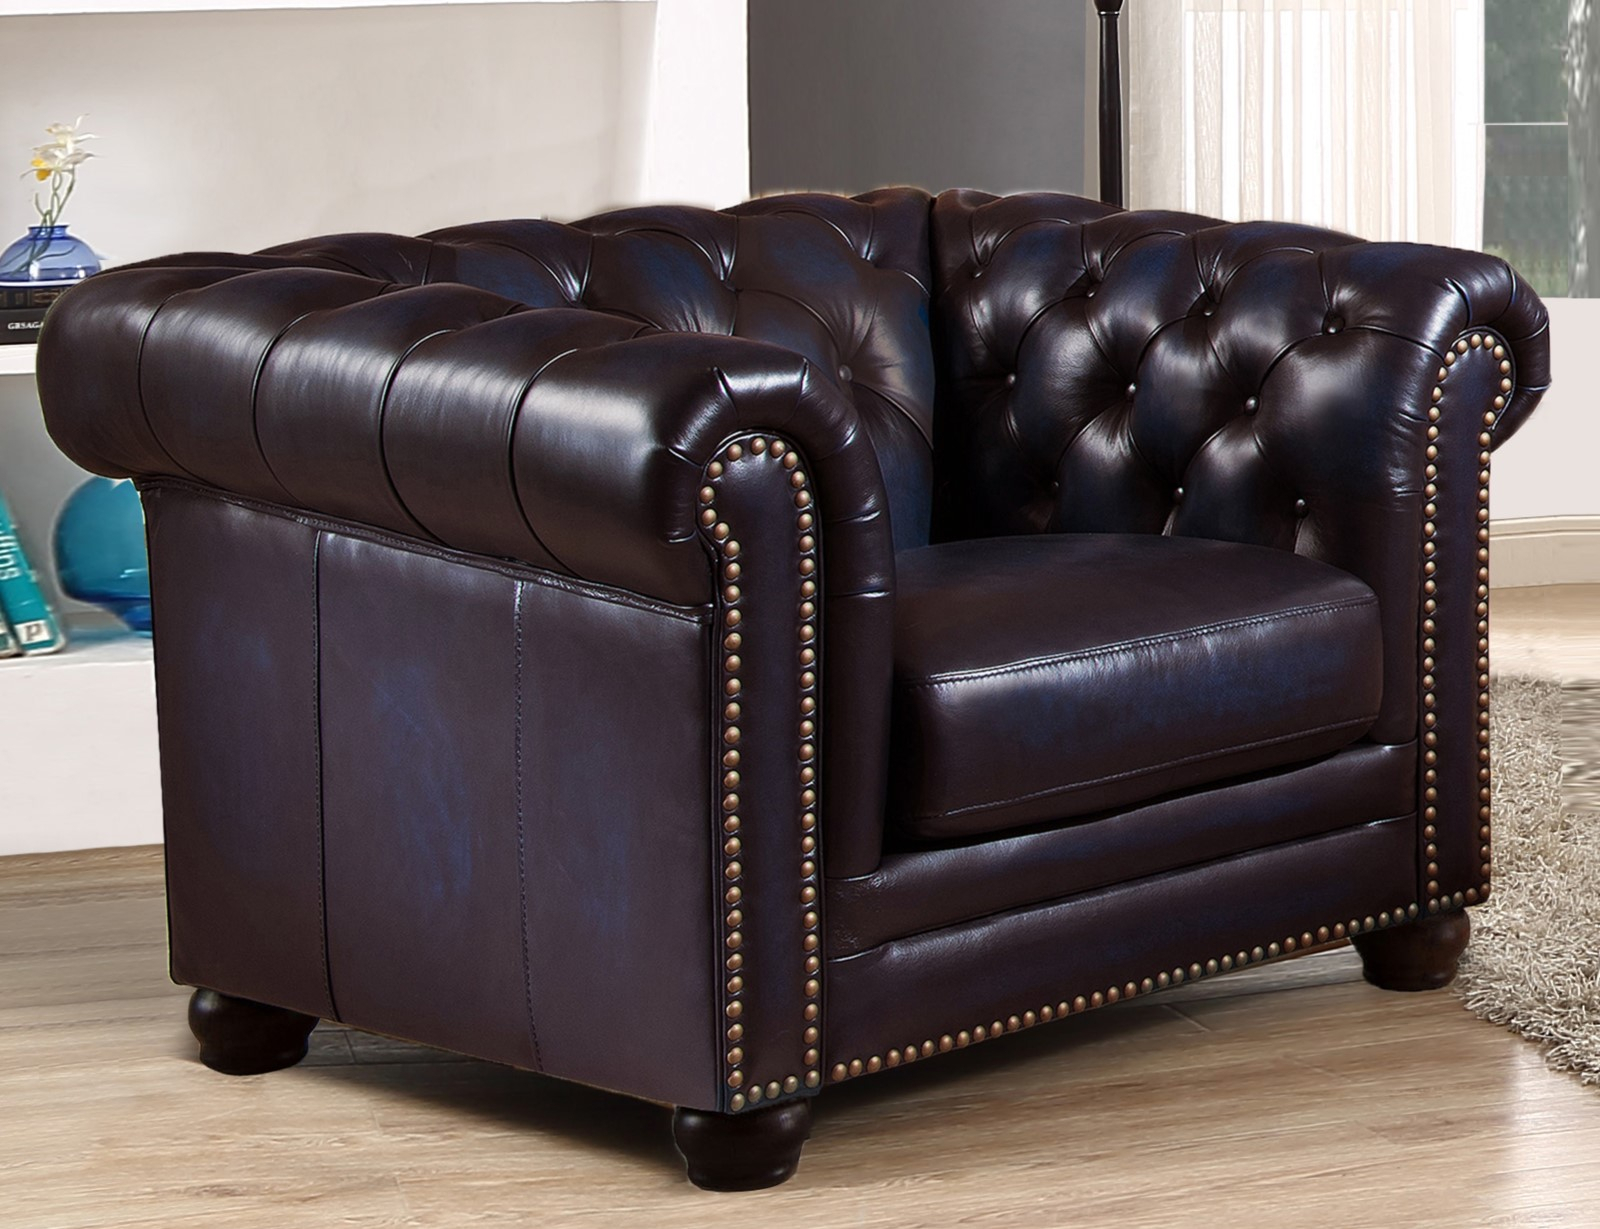 Dynasty 100% Genuine Leather Chesterfield Sofa & Two Within Leather Chesterfield Sofas (View 4 of 15)